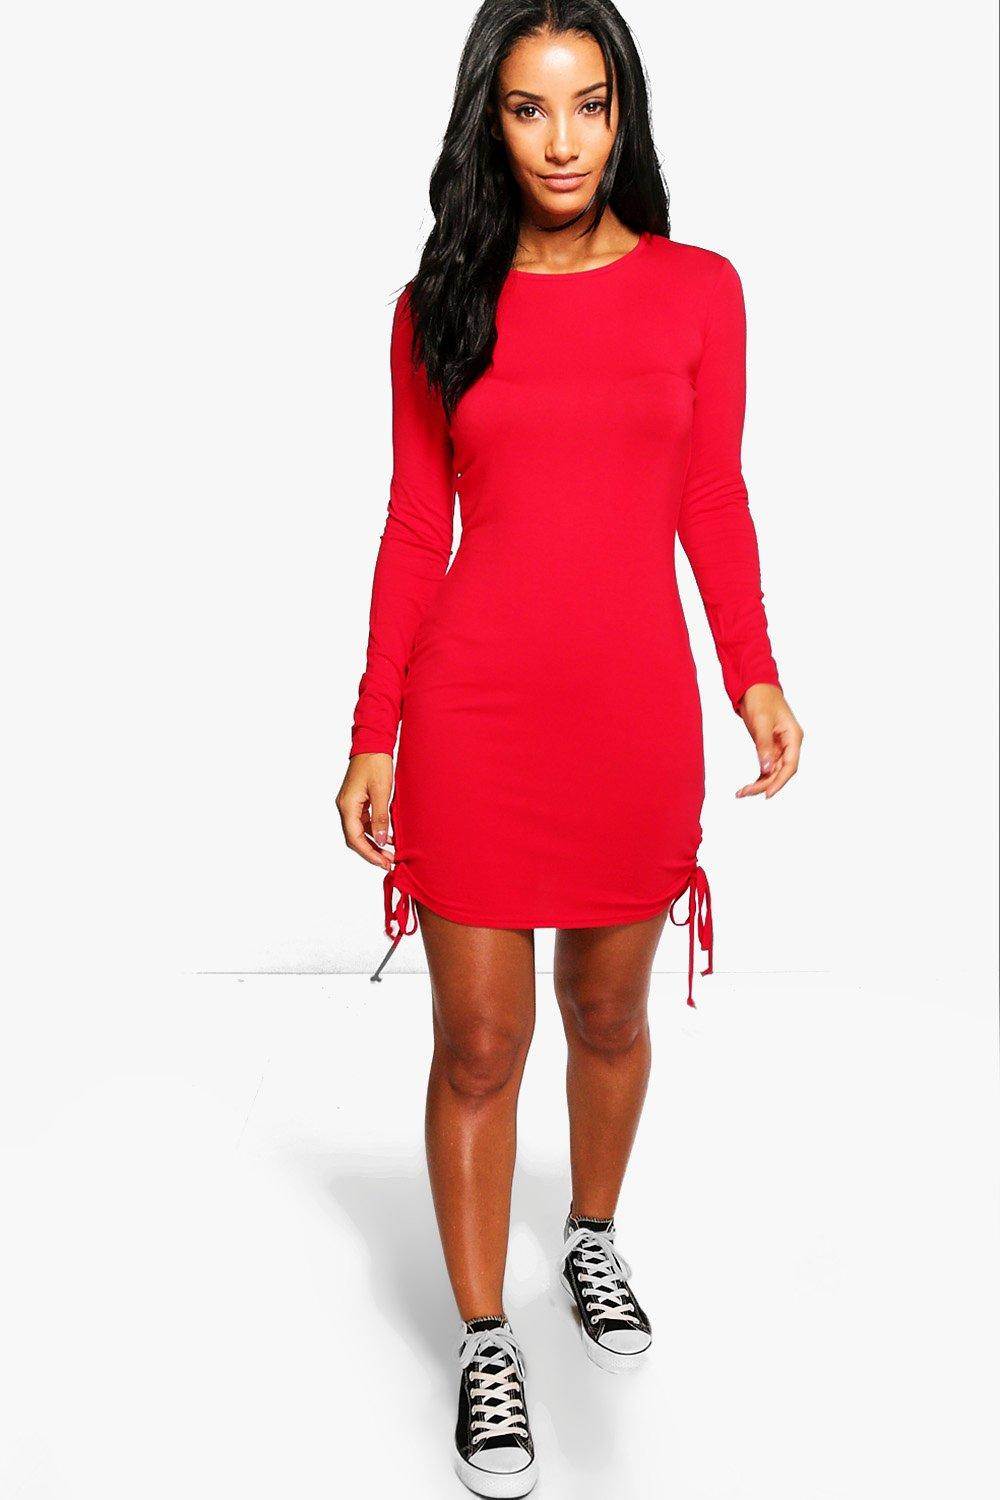 Flossie Long Sleeve Lace Up Bodycon Dress